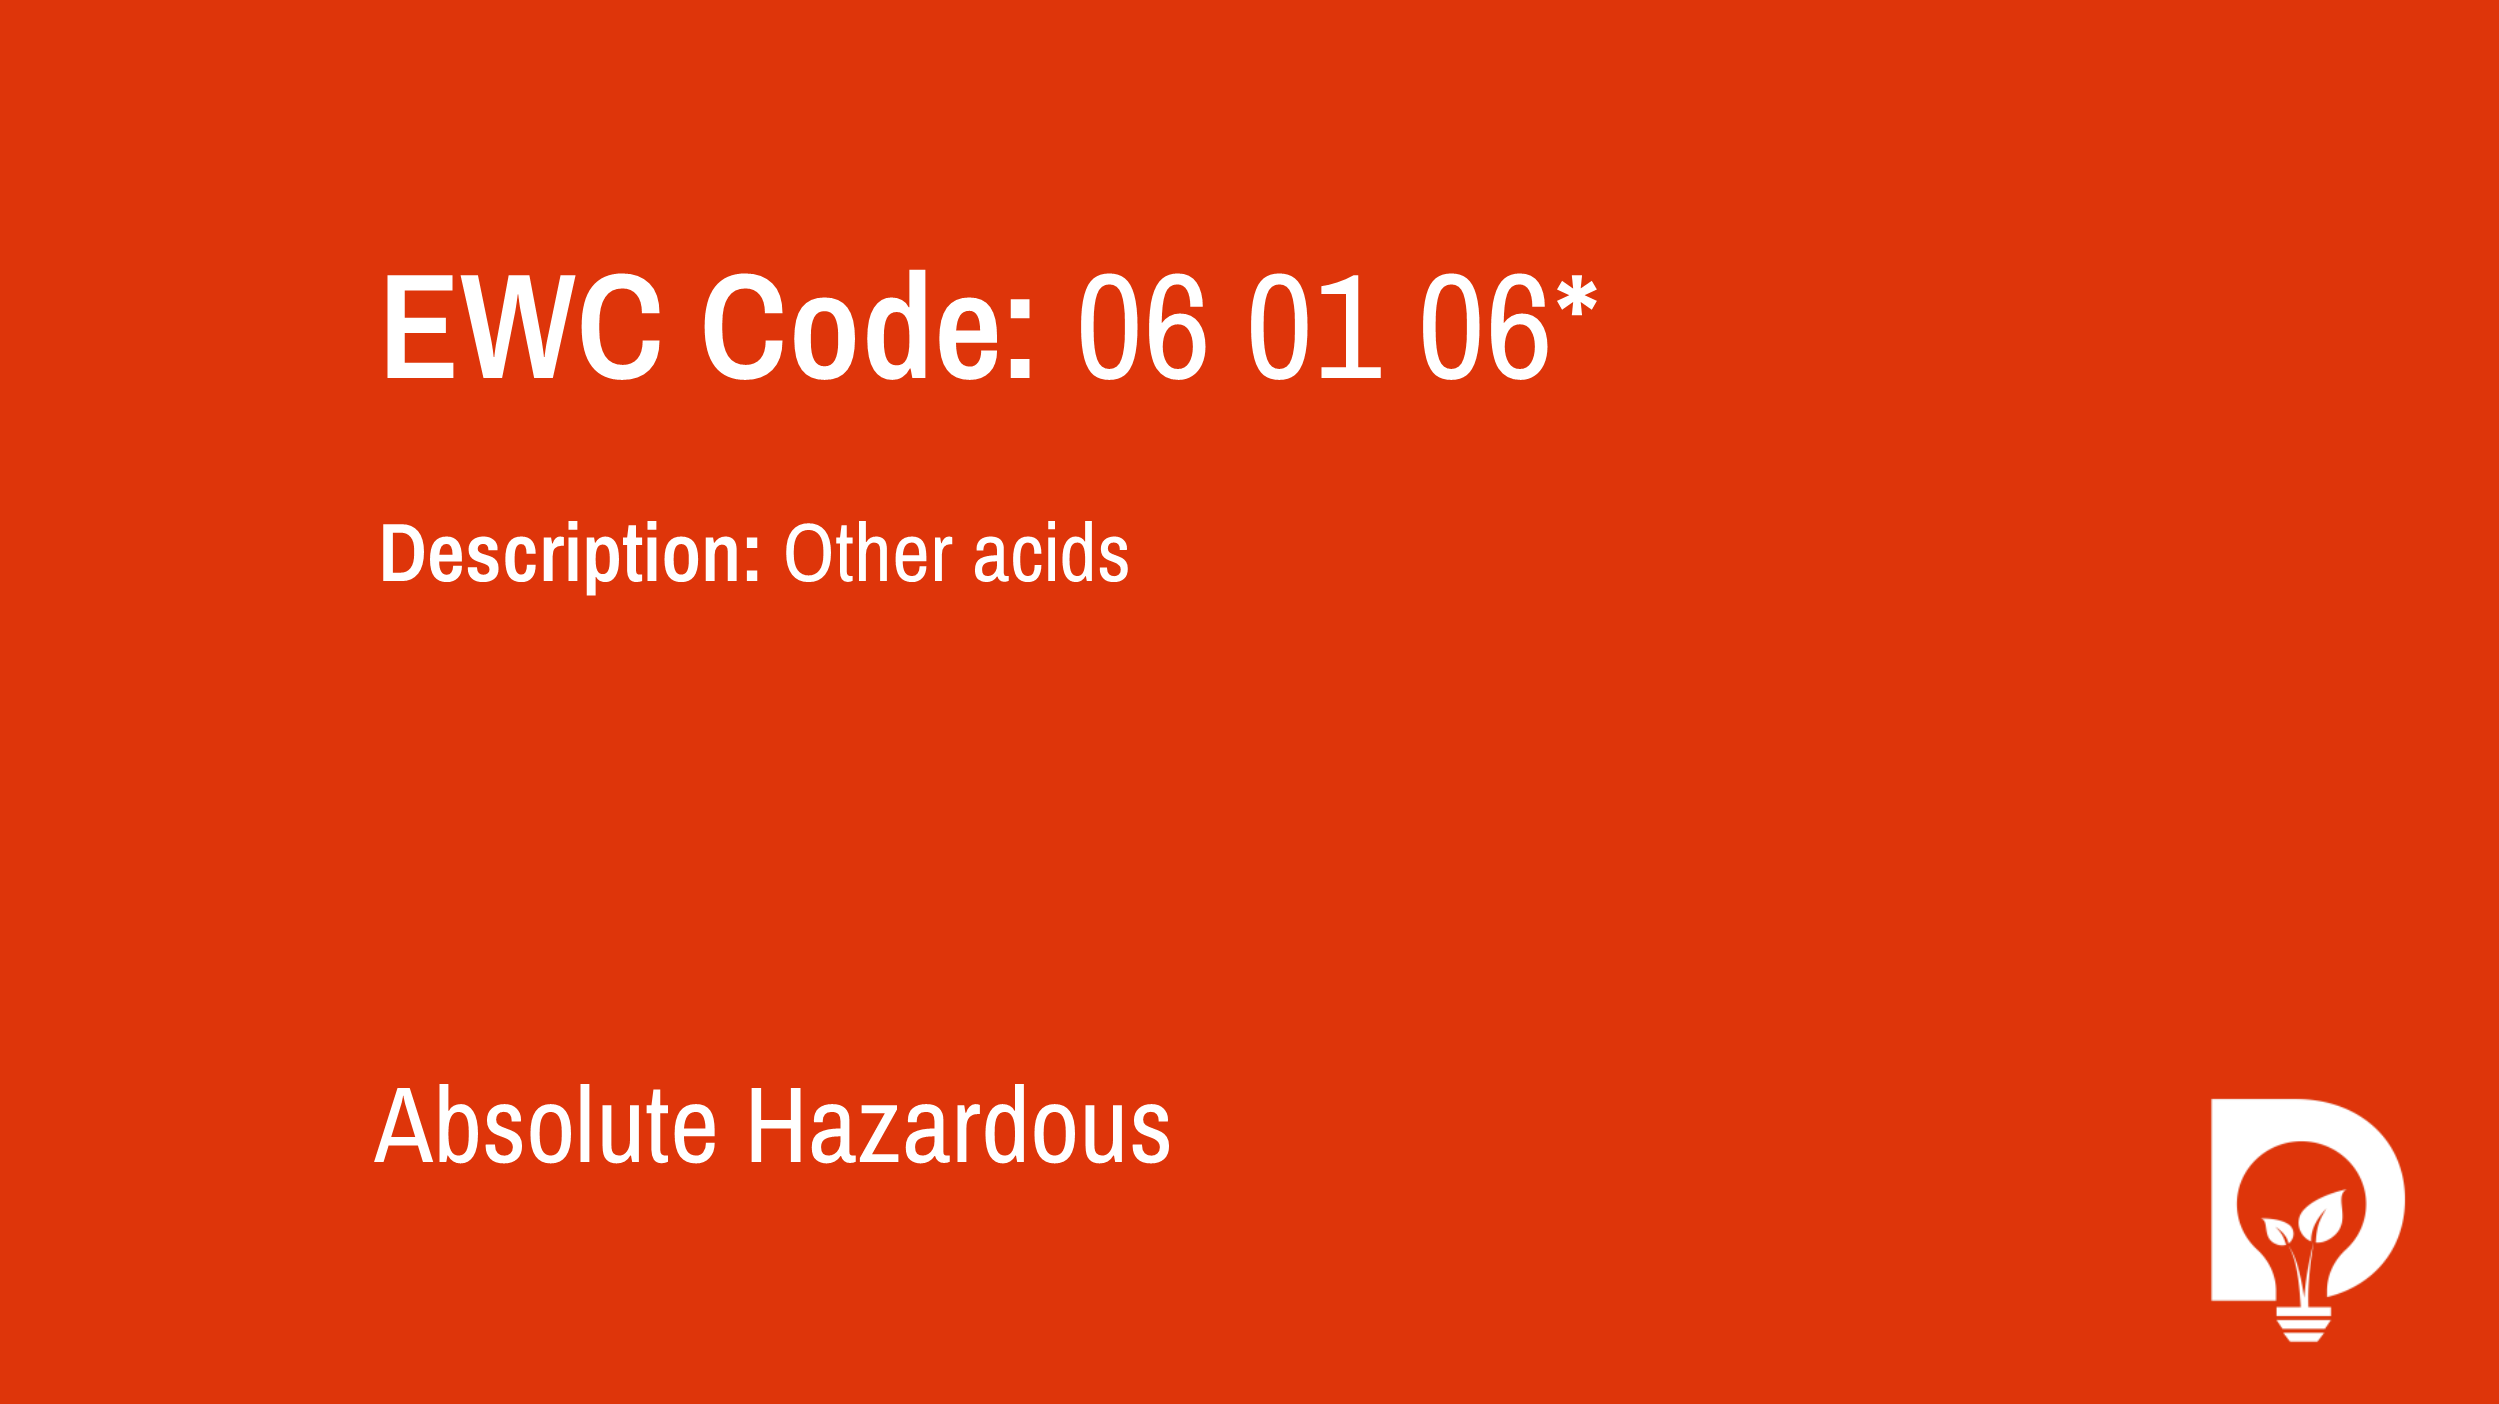 EWC Code: 06 01 06* - other acids. Type: Absolute Hazardous. Image by Dsposal